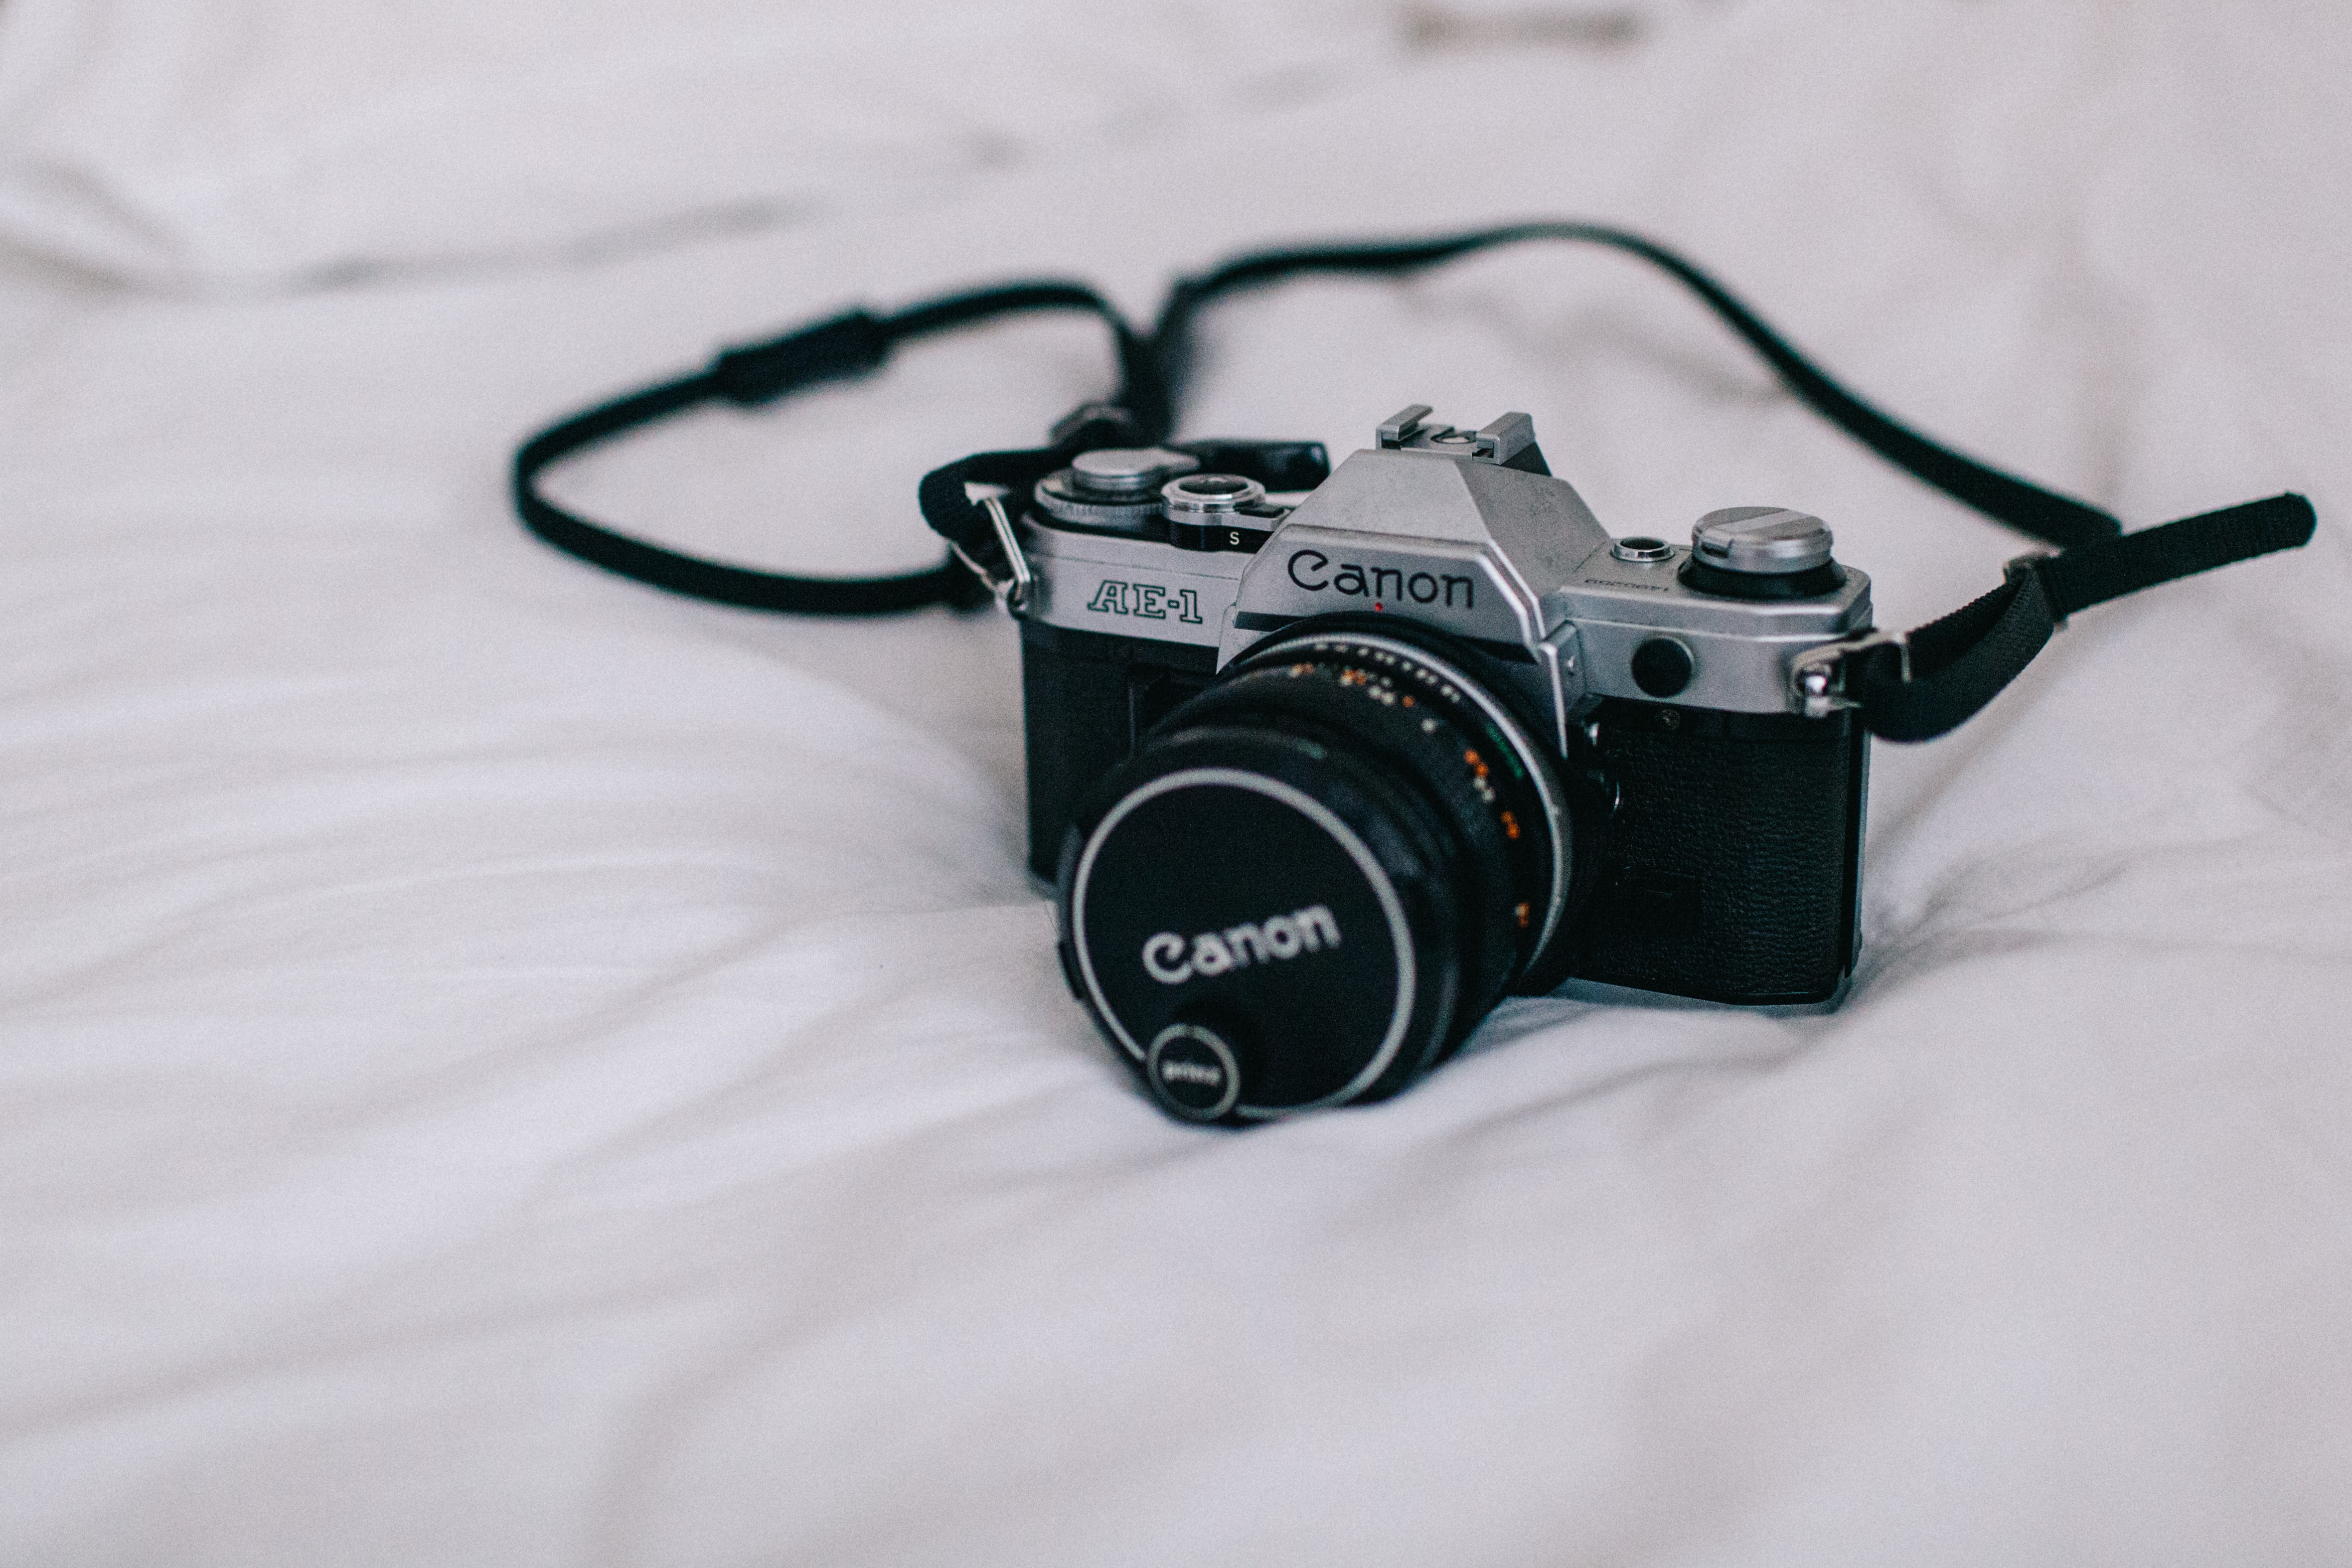 Vintage film canon camera on a bed